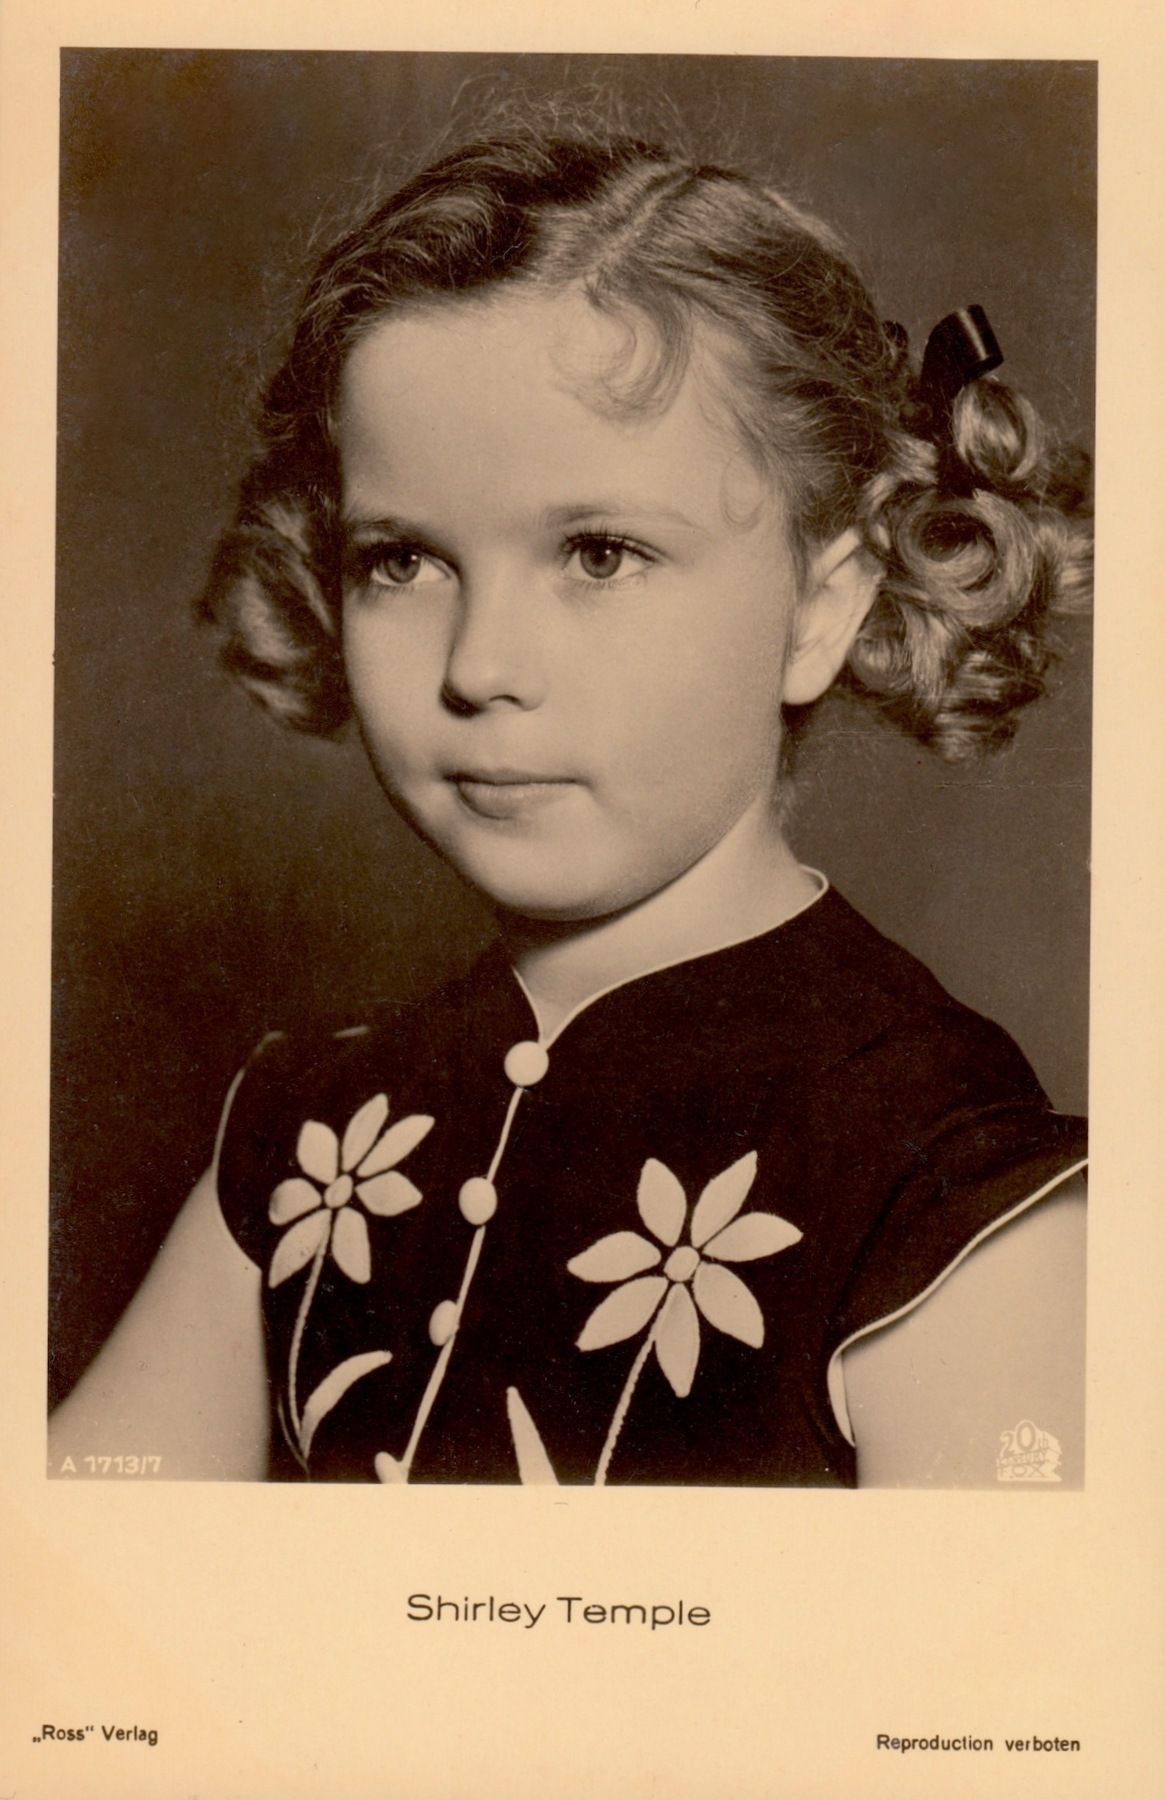 SHIRLEY TEMPLE 1930's original vintage ross verlag postcard. Ross movie star  postcards (Germany) are the most highly sought after for their unsurpassed  ...